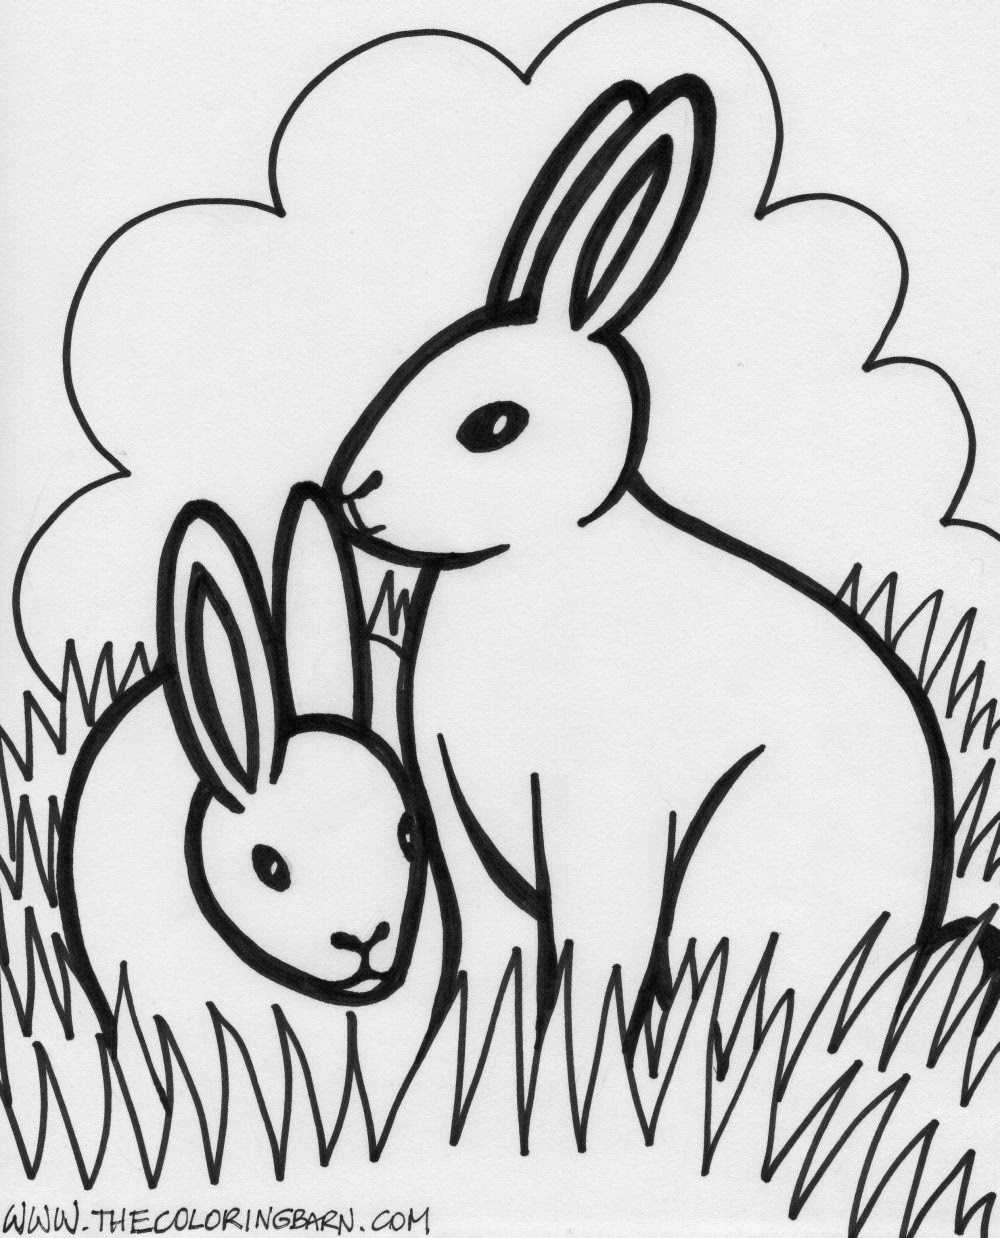 Colouring in sheets farm animals - Colouring In Farm Animals Educational Fun Worksheets For Kids Helping The Kids In Learning 28